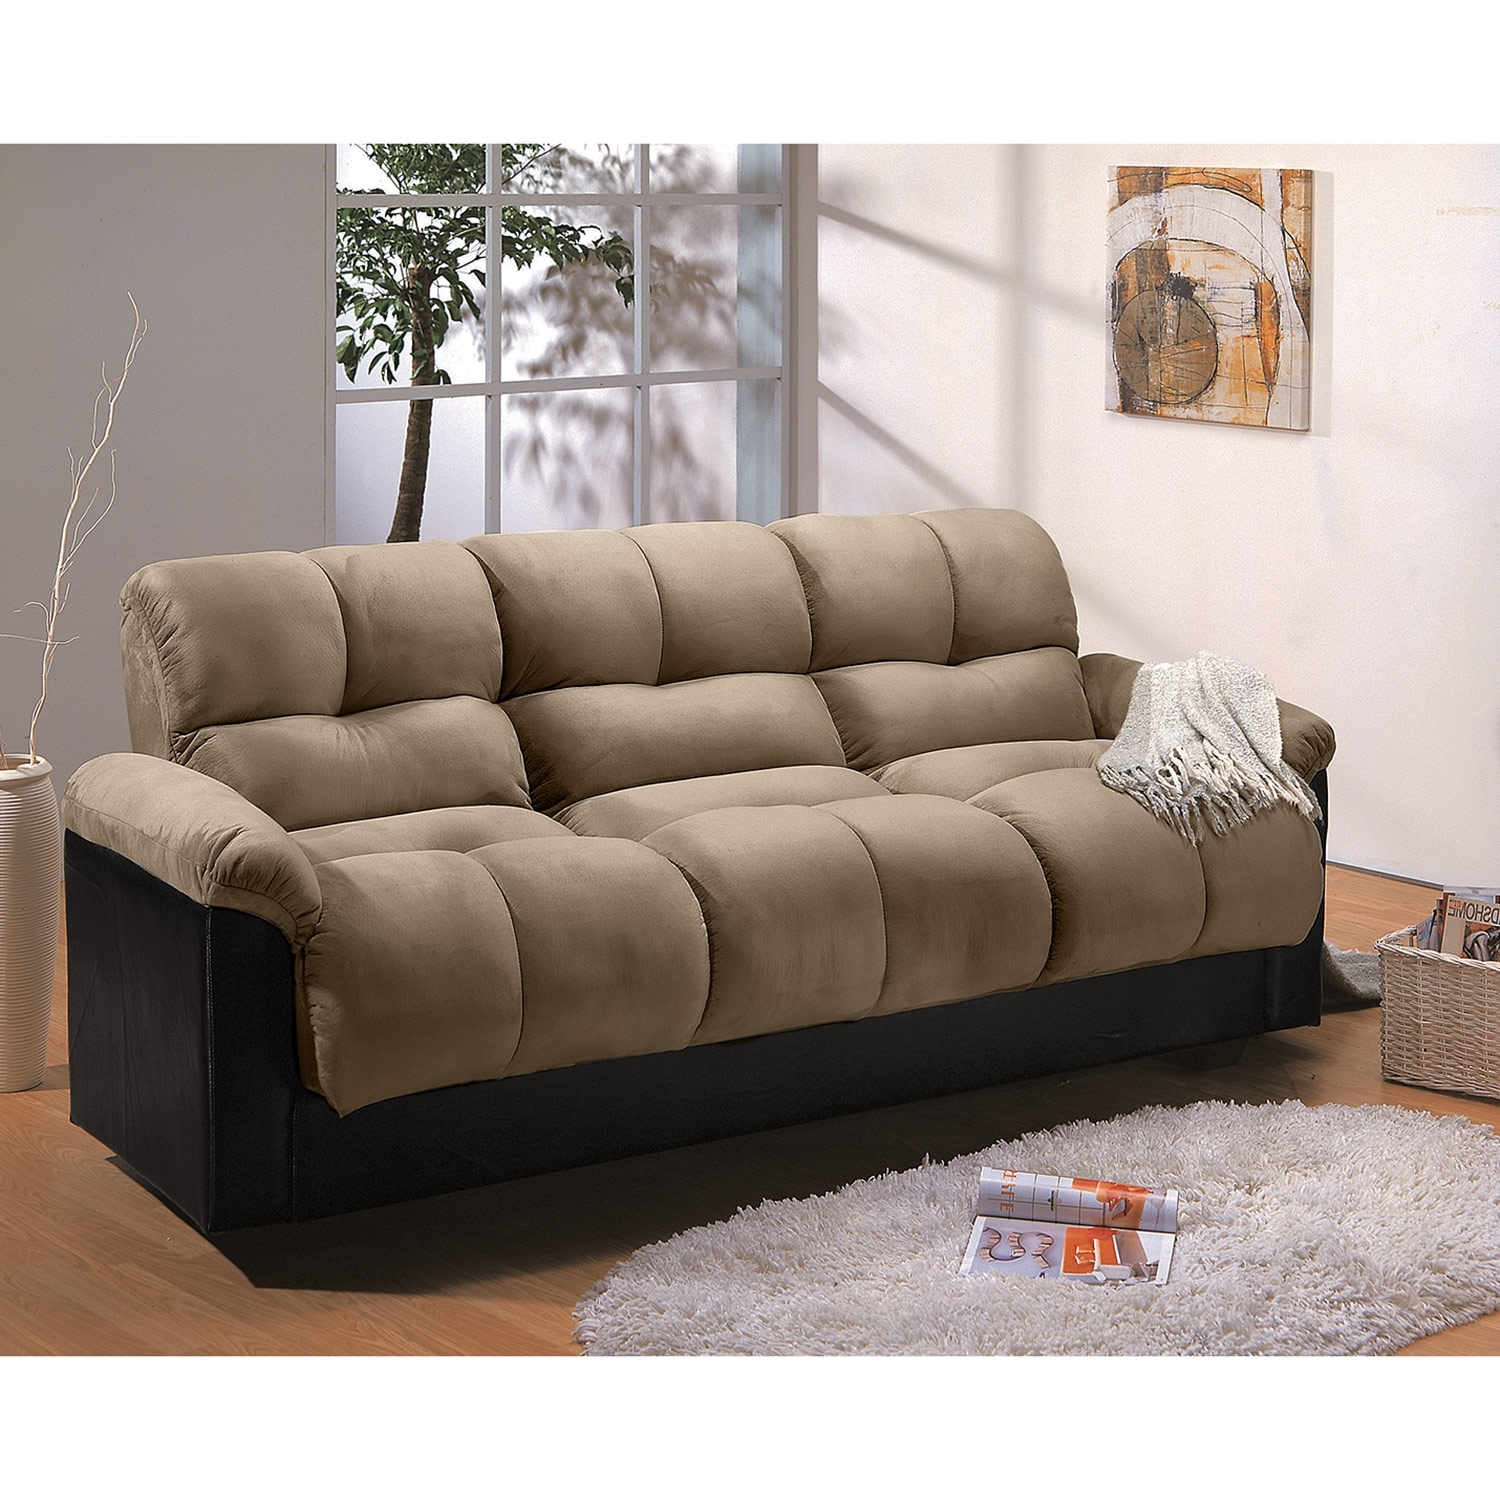 Bed Sofa Furniture Raya Furniture Pertaining To Cool Sofa Beds (#3 of 12)